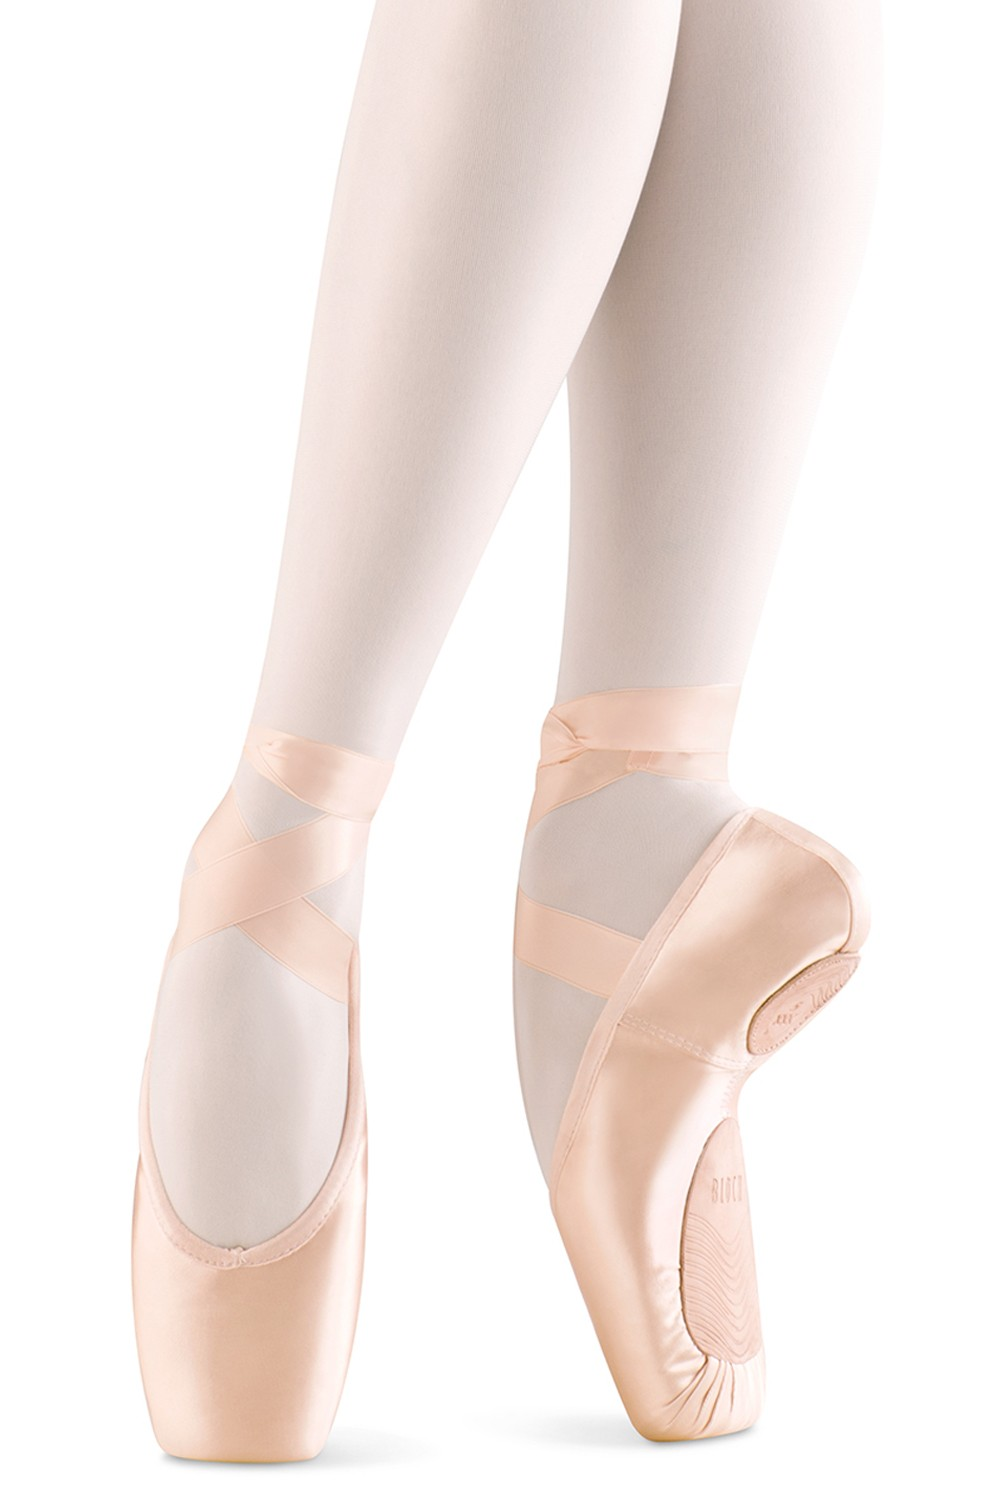 Eurostretch - Stretch Pointe Shoe Pointe Shoes